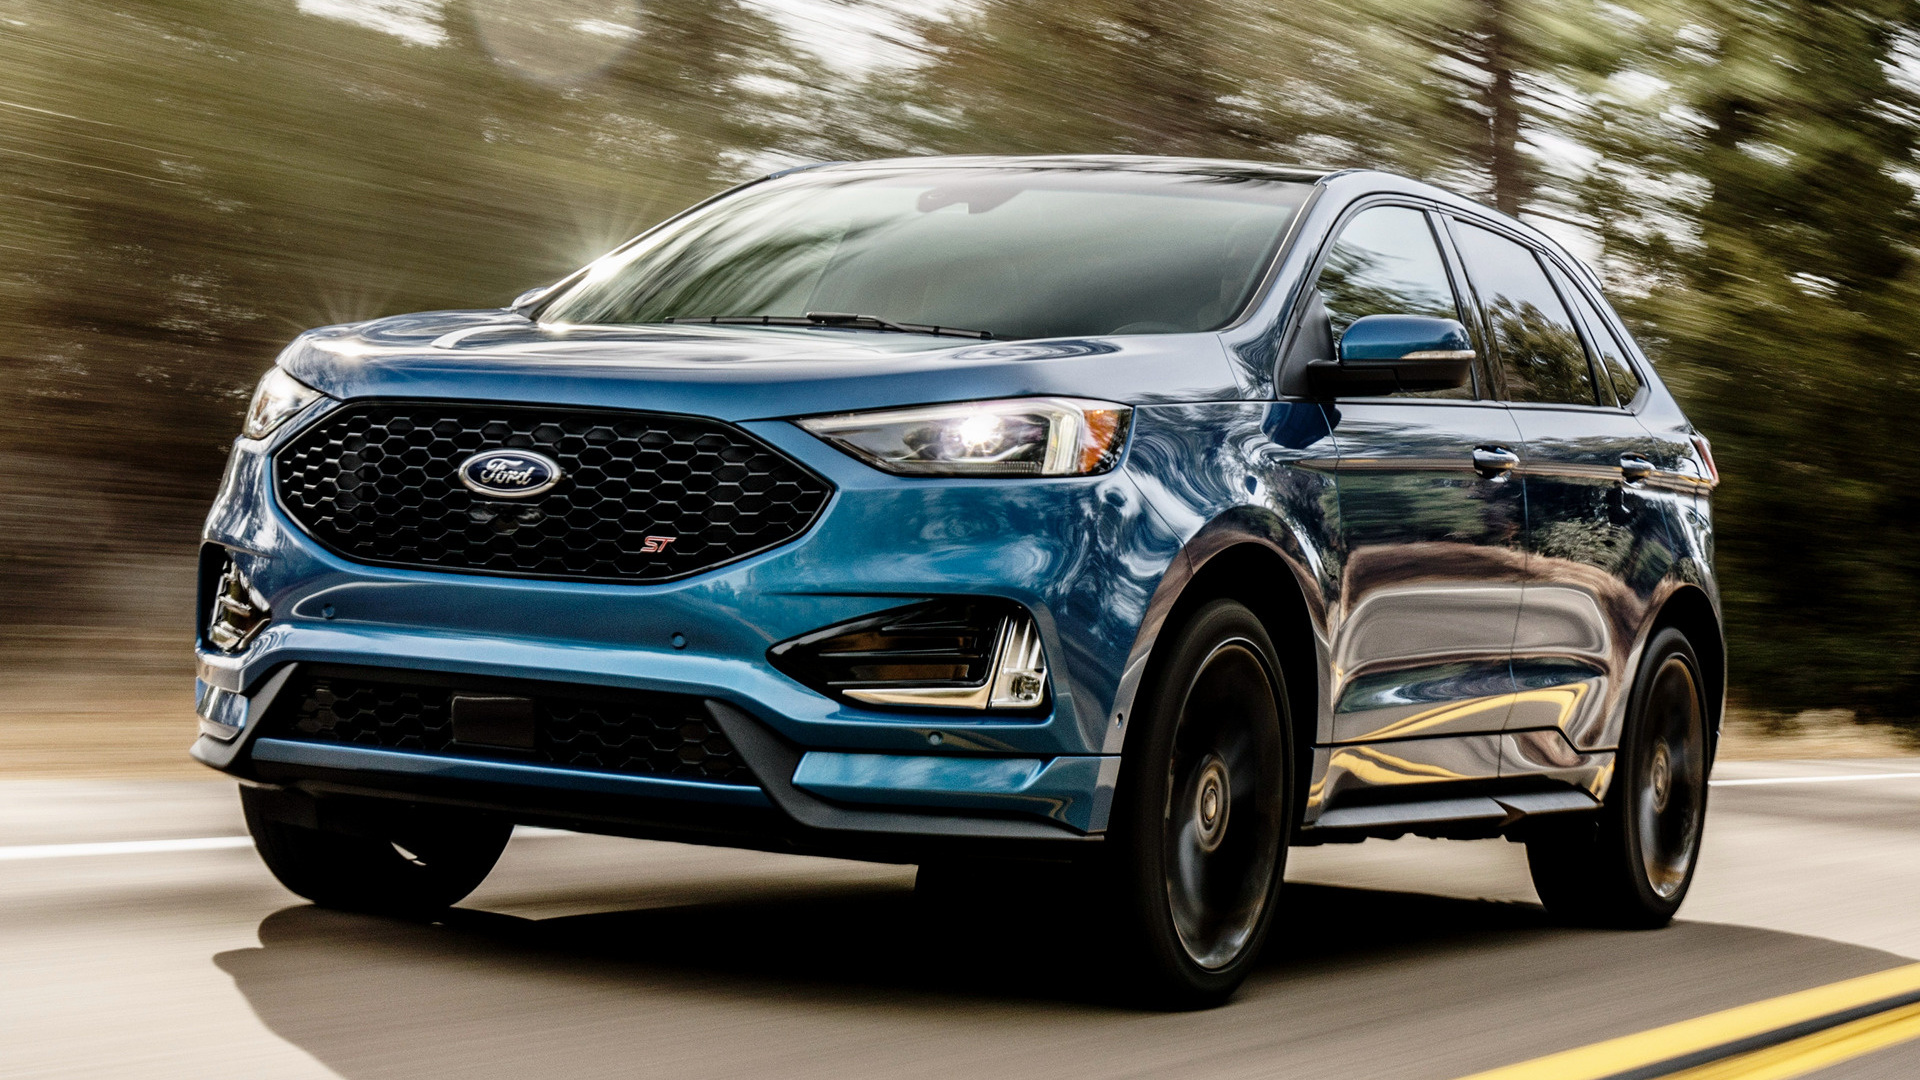 Ford Edge ST (2019) Wallpapers and HD Images - Car Pixel